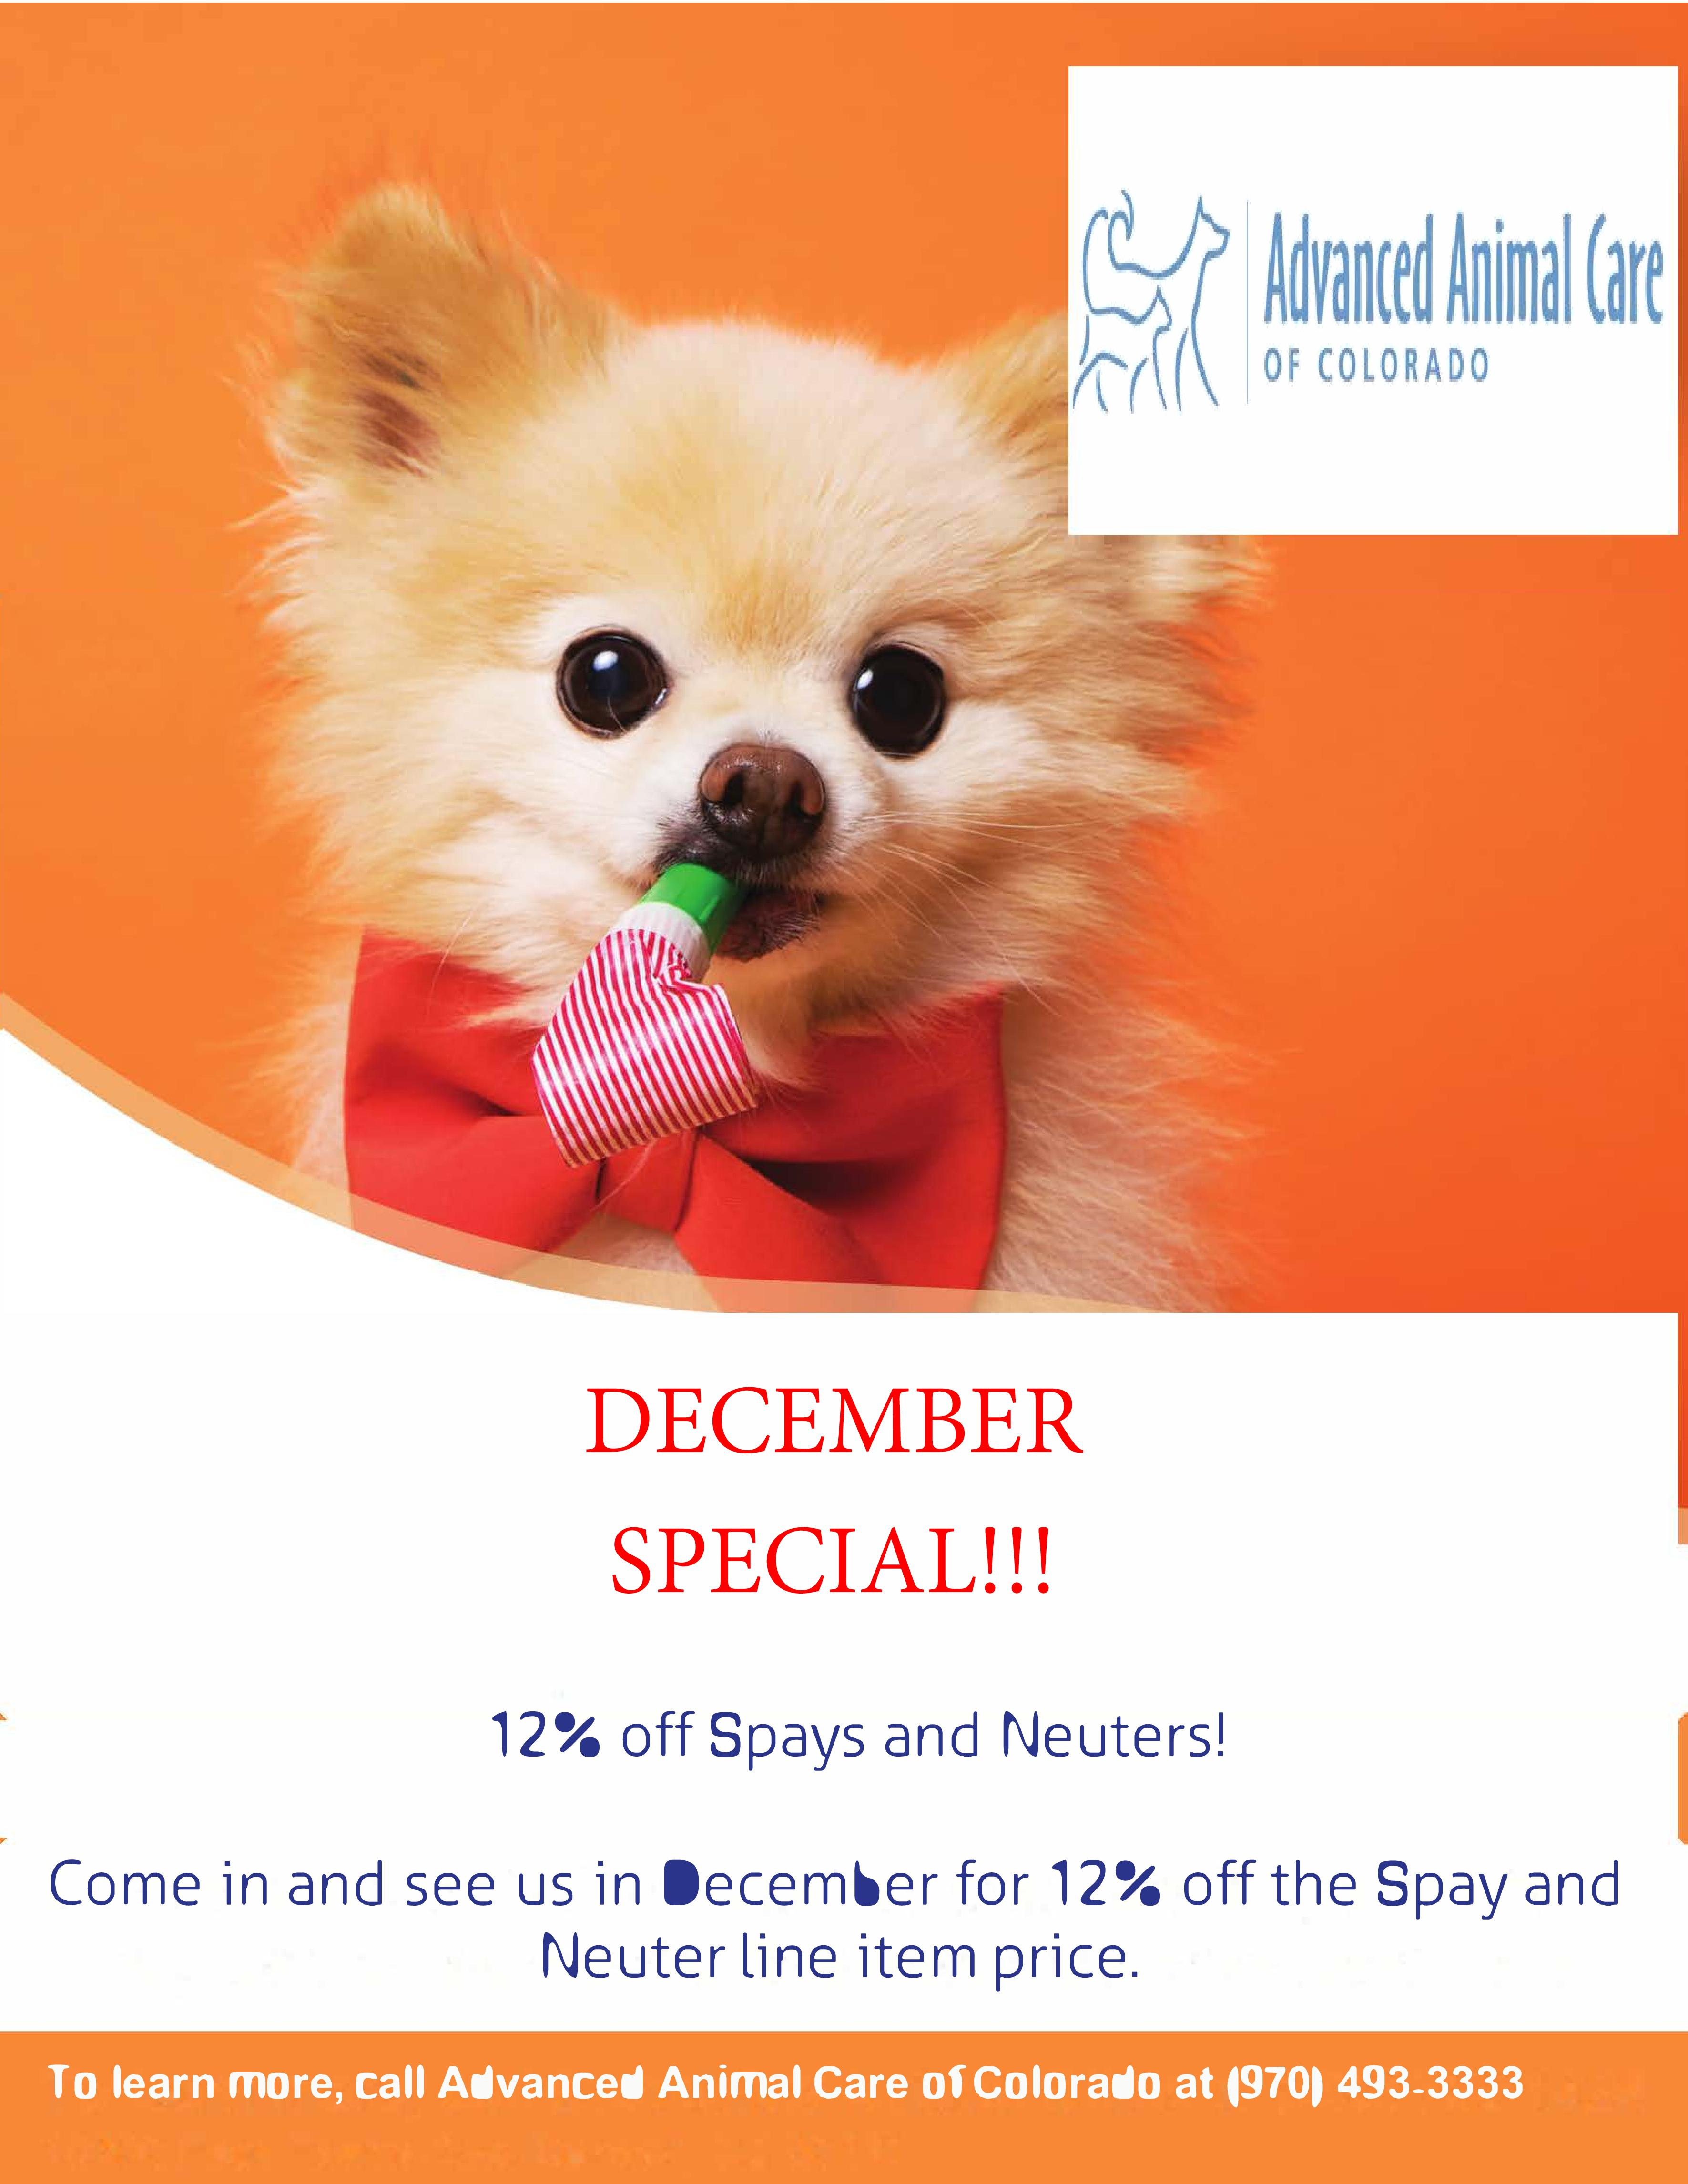 12% Off Spays and Neuters!*